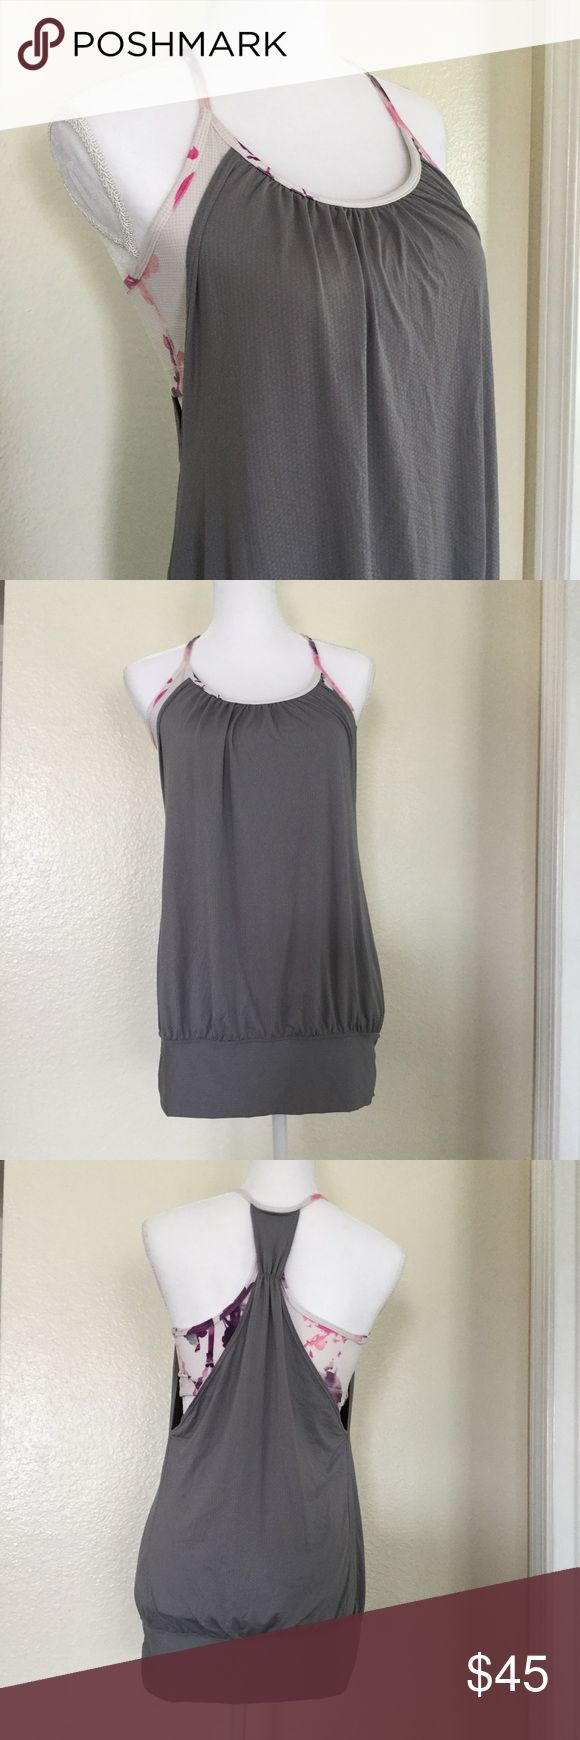 """🆕Lululemon No Limits fossil blurred blossoms tank Work out in style and without limits!  🐾 No Limits tank 🐾 Fossil and blurred blossoms multi-color 🐾 Racerback, thin straps 🐾 Mesh panel in bust lining 🐾 Circle mesh is moisture wicking 🐾 Wide band around hips to keep tank in place 🐾 Shelf bra, medium support 🐾 Losse fitting, low hip length 🐾 Bust (built in bra): 15"""" approx. 🐾 Length: 25 1/2"""" approx. 🐾 Excellent condition  🐾 Bundle discount 🐾 No trades 🐾 Smoke free, pet friendly…"""